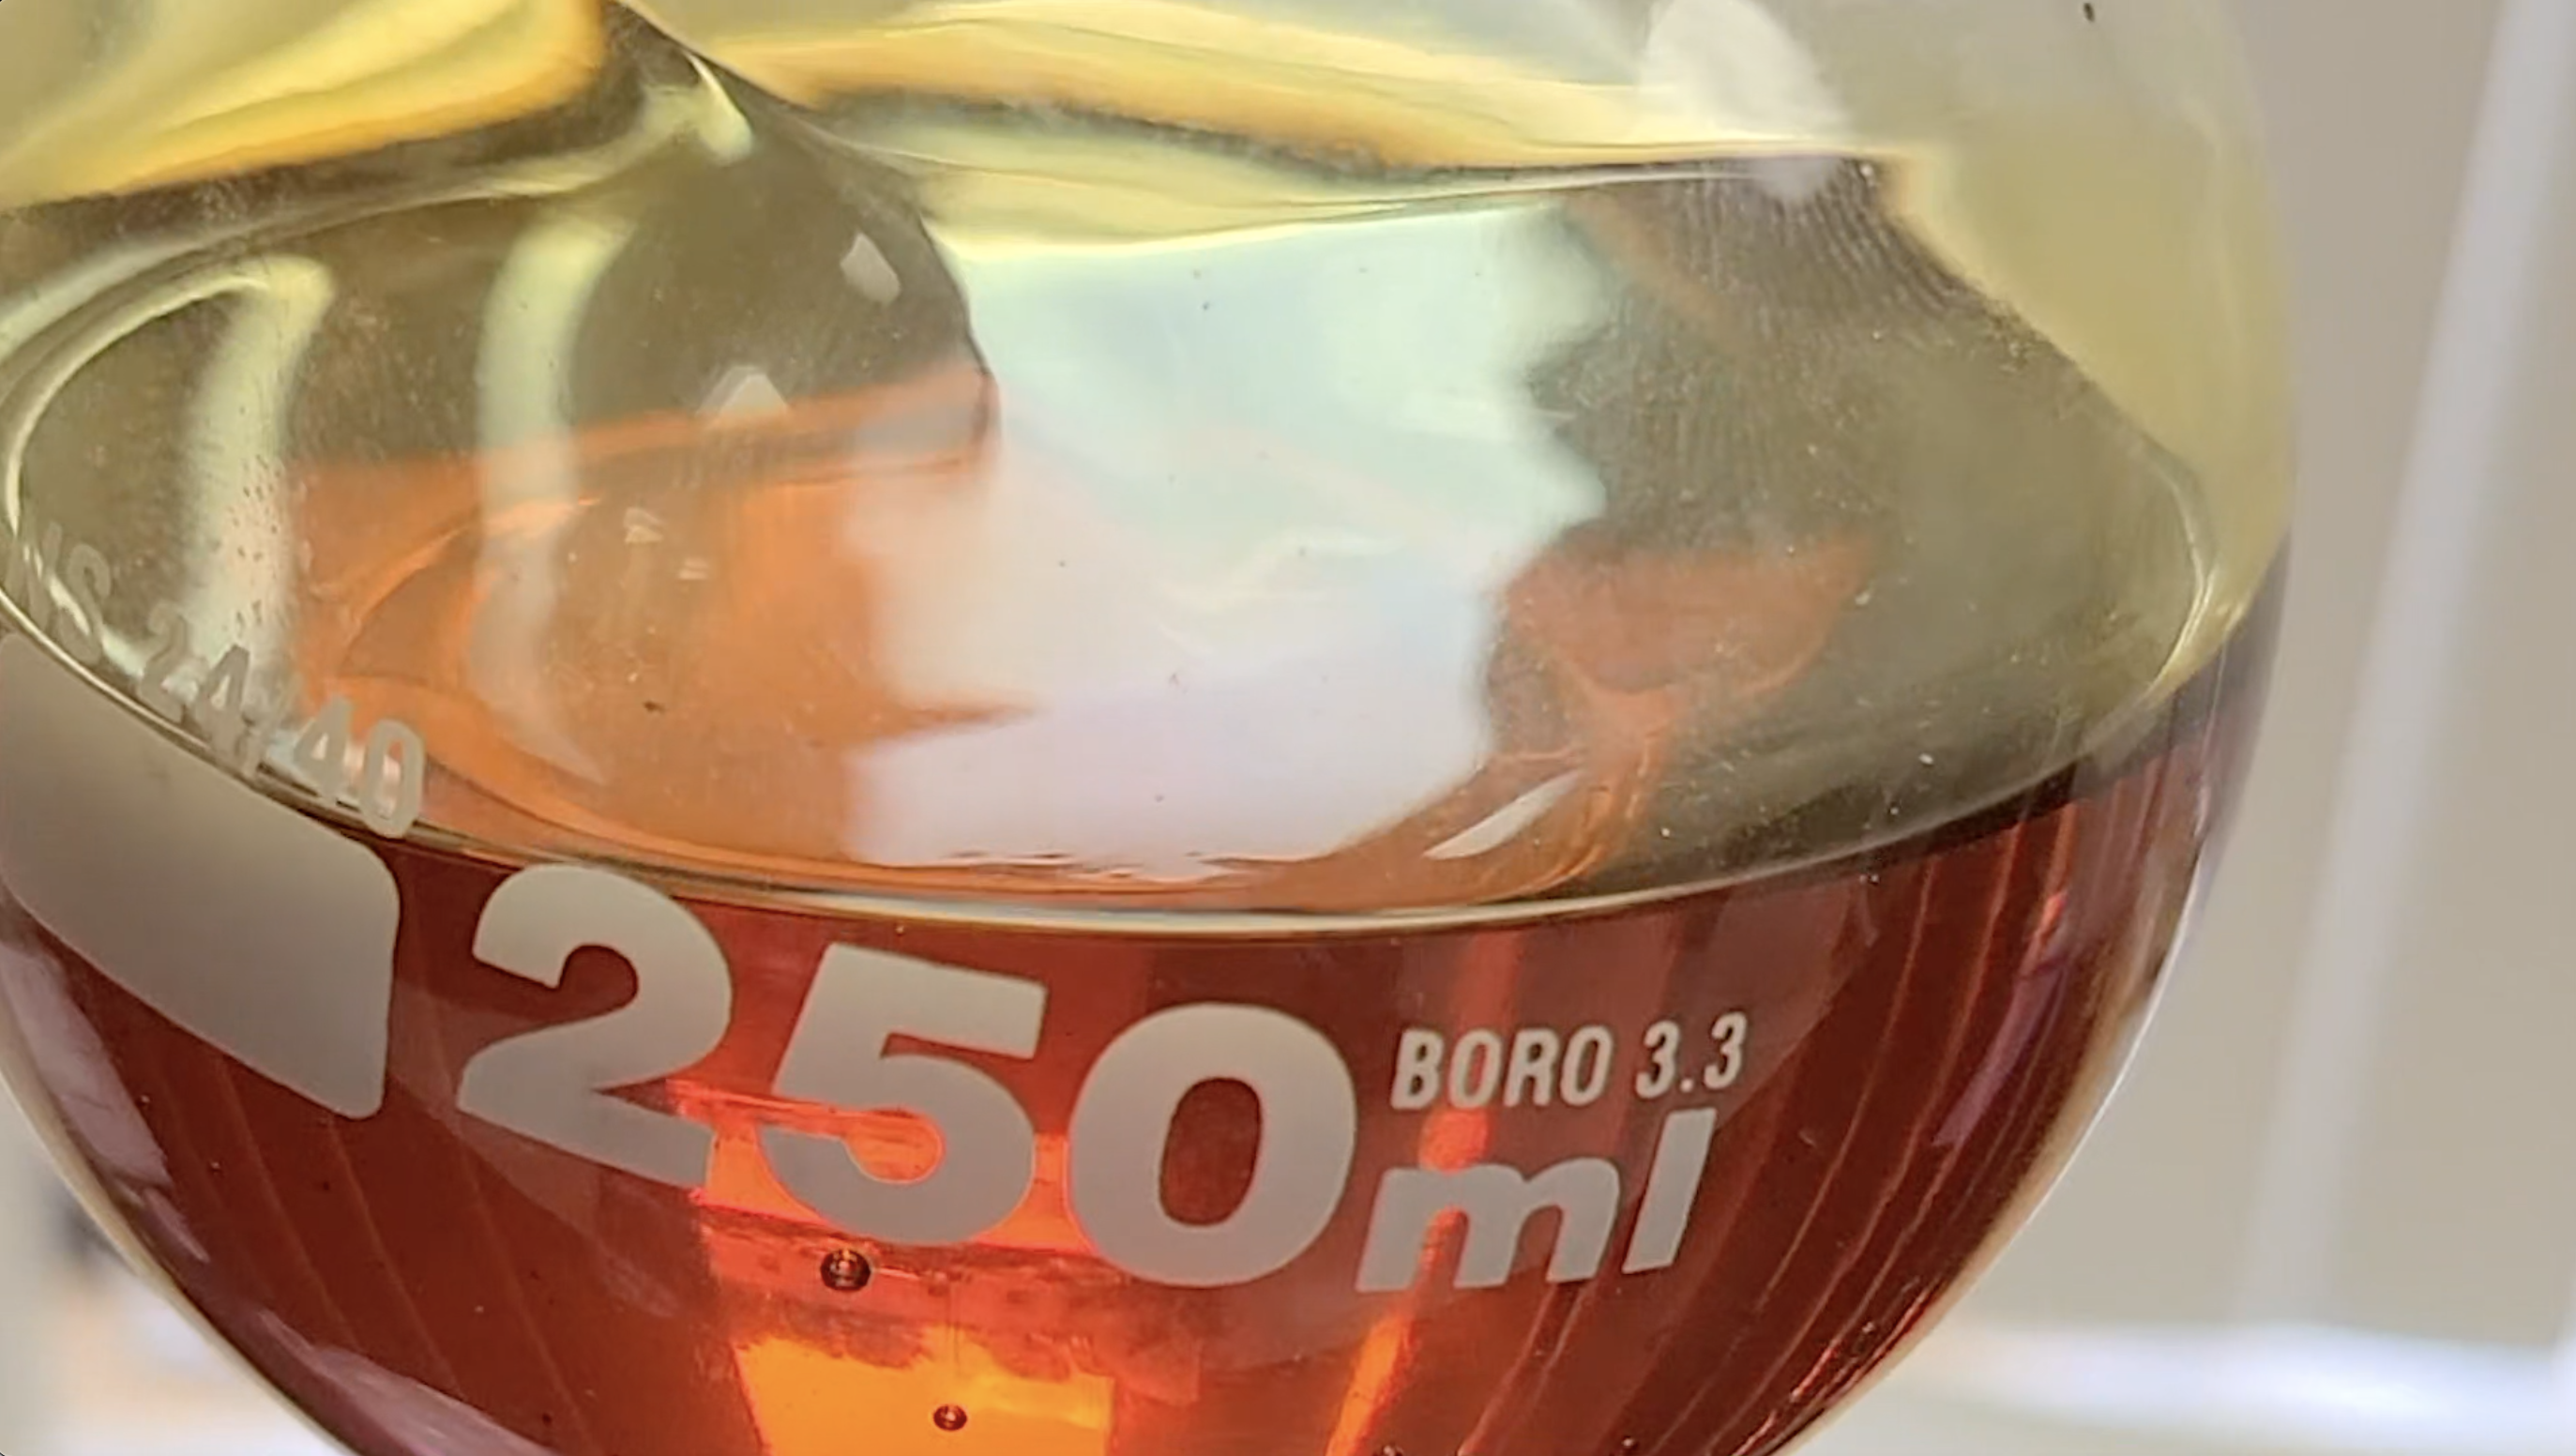 A glass beaker full of red-orange tinted CBD oil with 250ml markings visibile